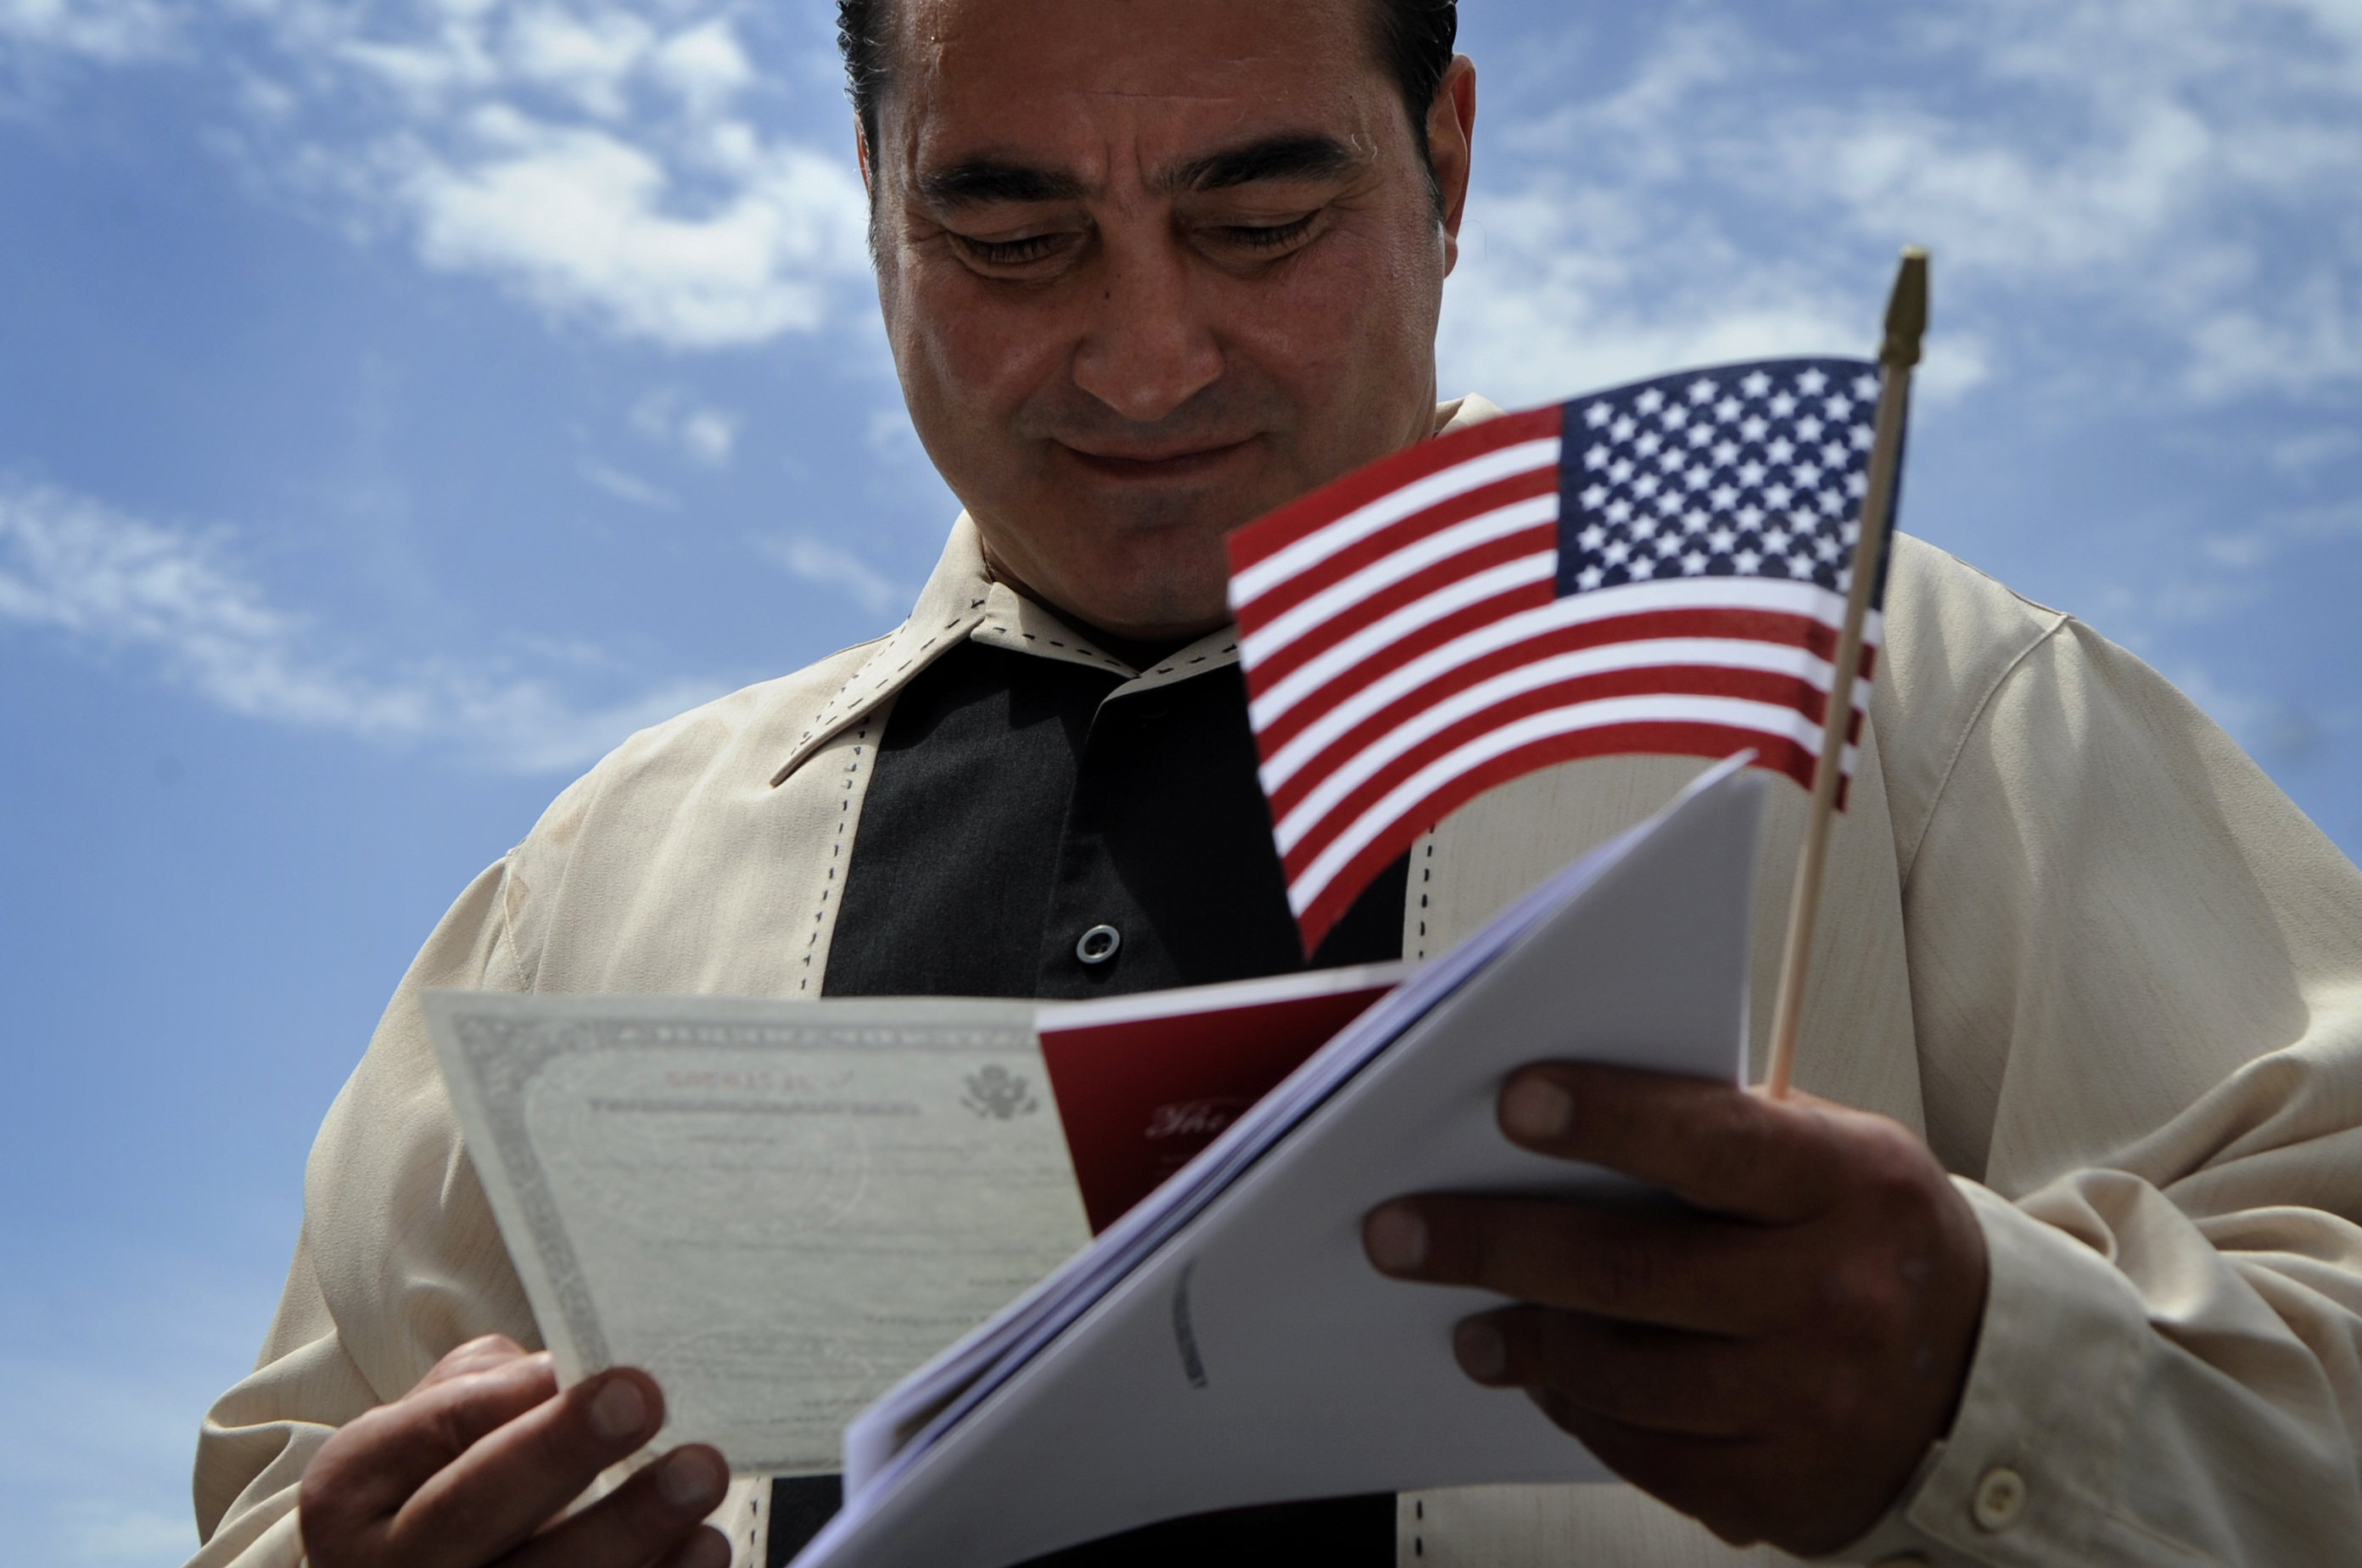 (XX)WRESTLER_062308_CFW- Tsolak Yeghishyan admires his Certificate of Naturalization after his naturalization ceremony at the United States Citizenship & Immigration Services building in Denver, CO. Tsolak Yeghishyan was an Olympic wrestler for Armenia in